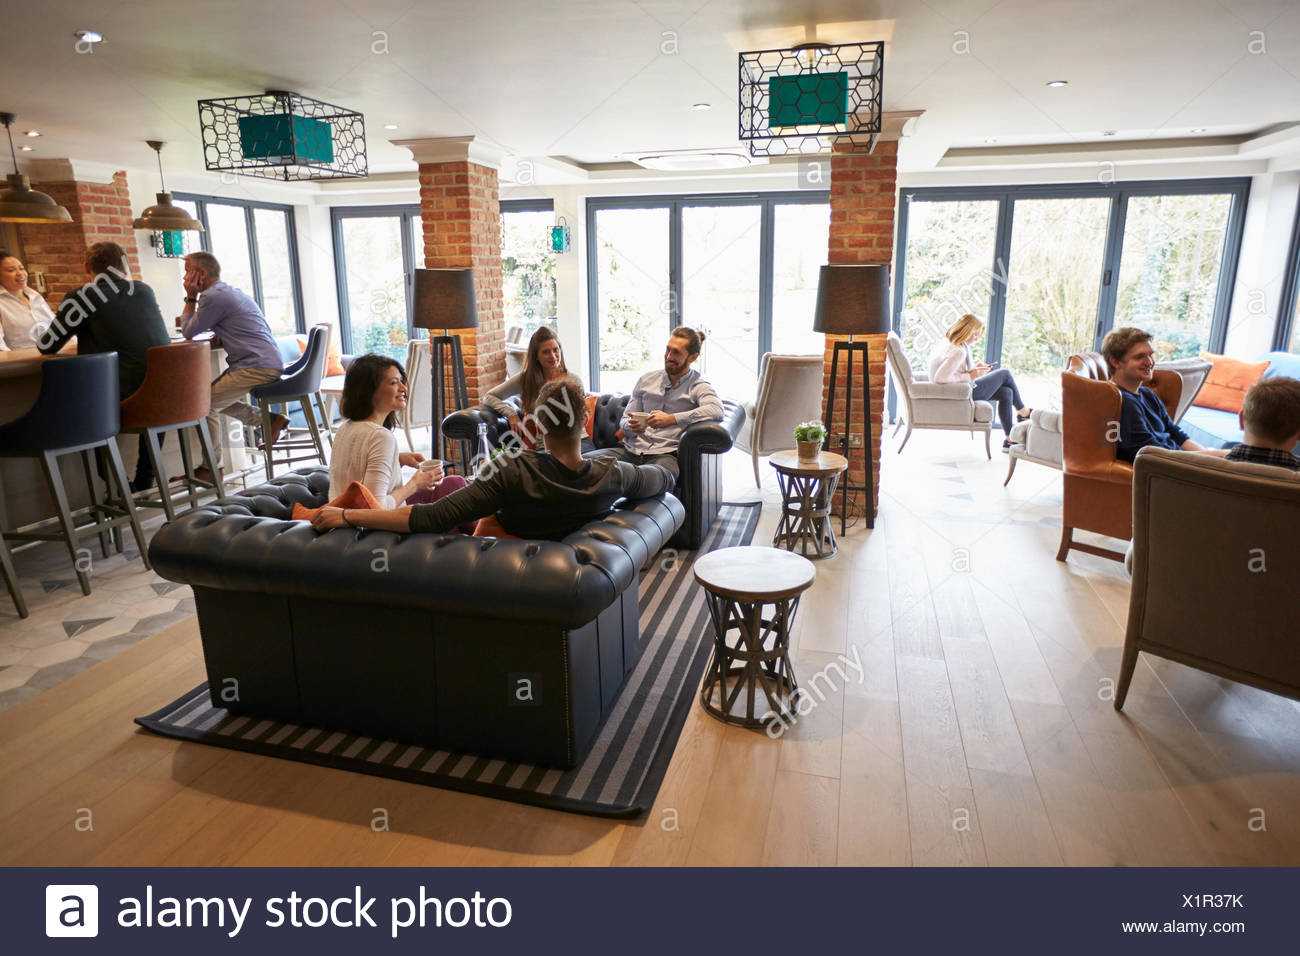 Charmant Busy Reception Area Of Modern Boutique Hotel With Guests   Stock Image